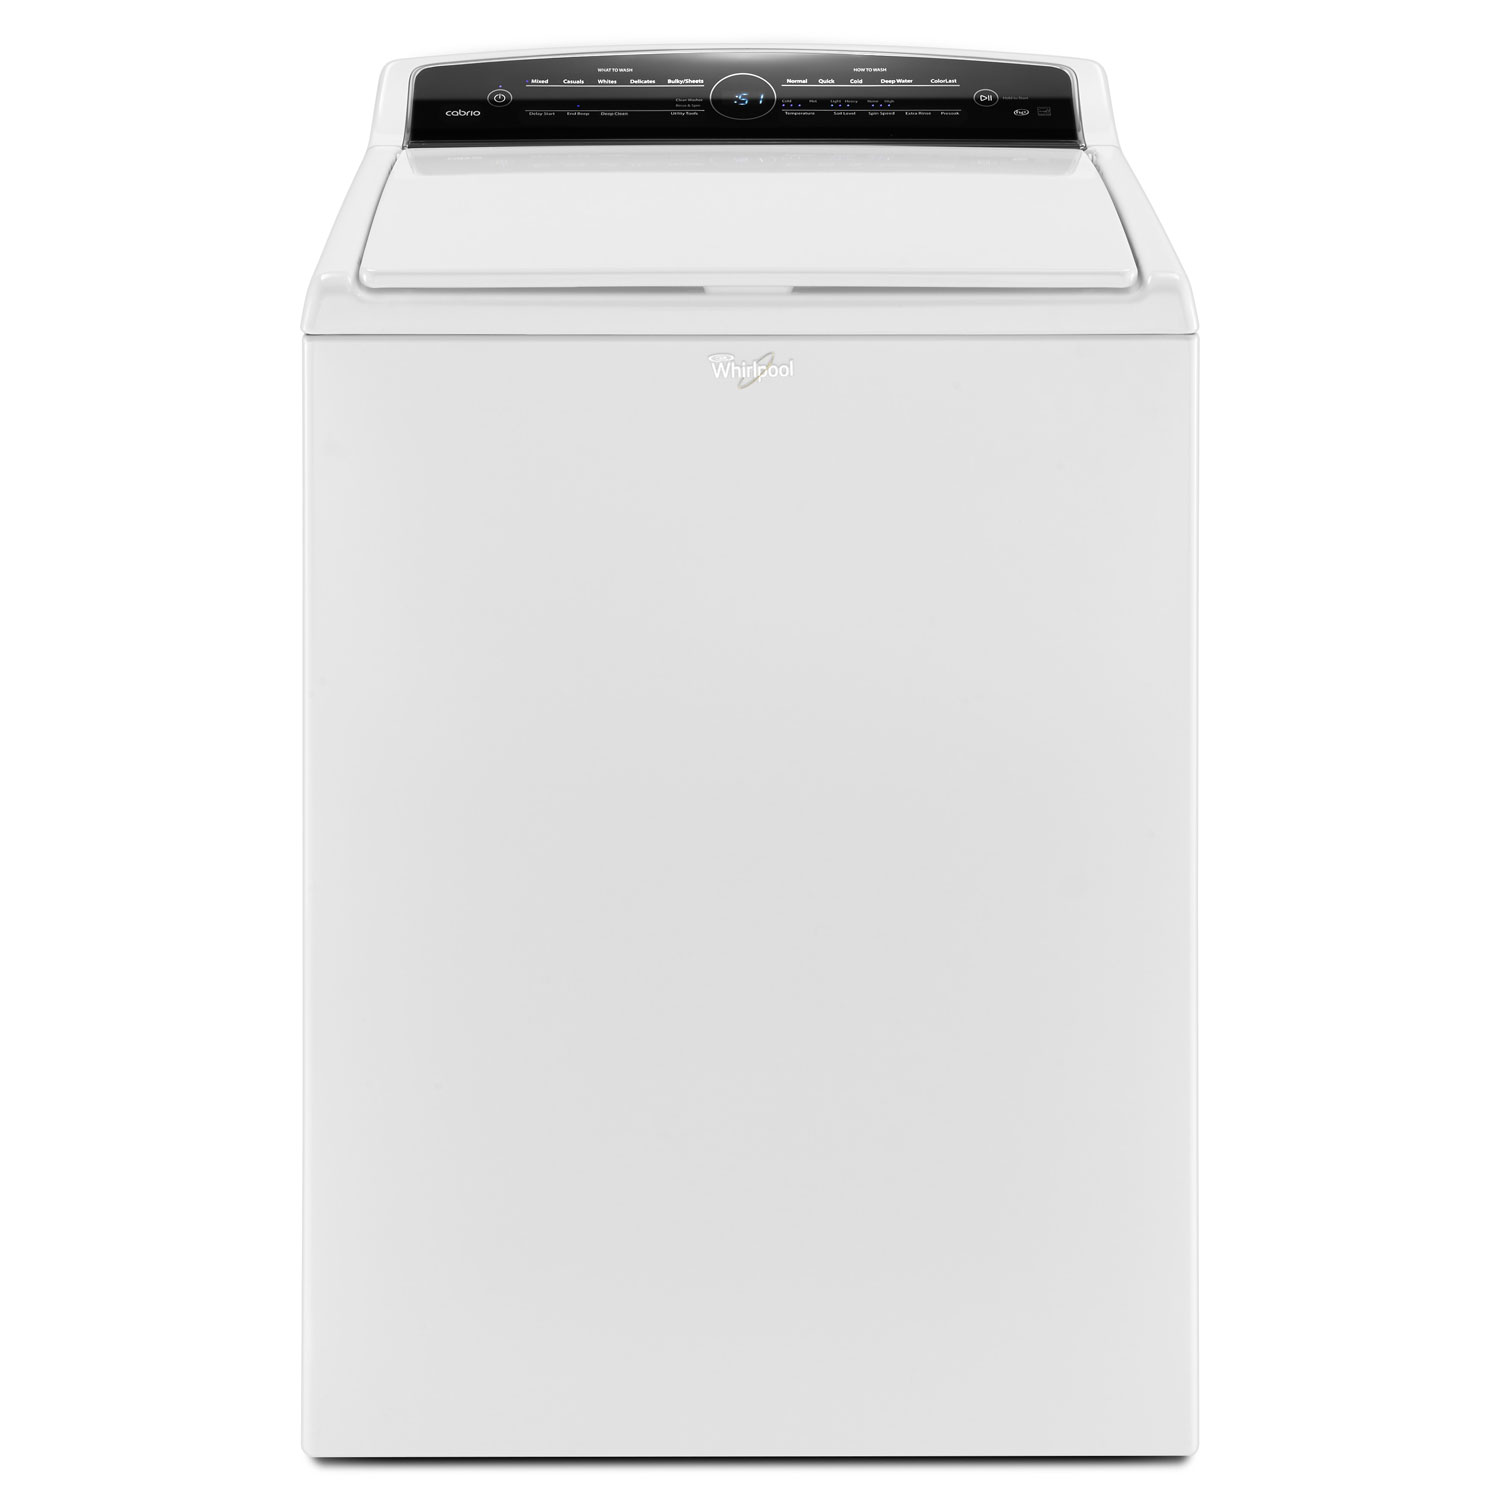 What is a Whirlpool top load washer?